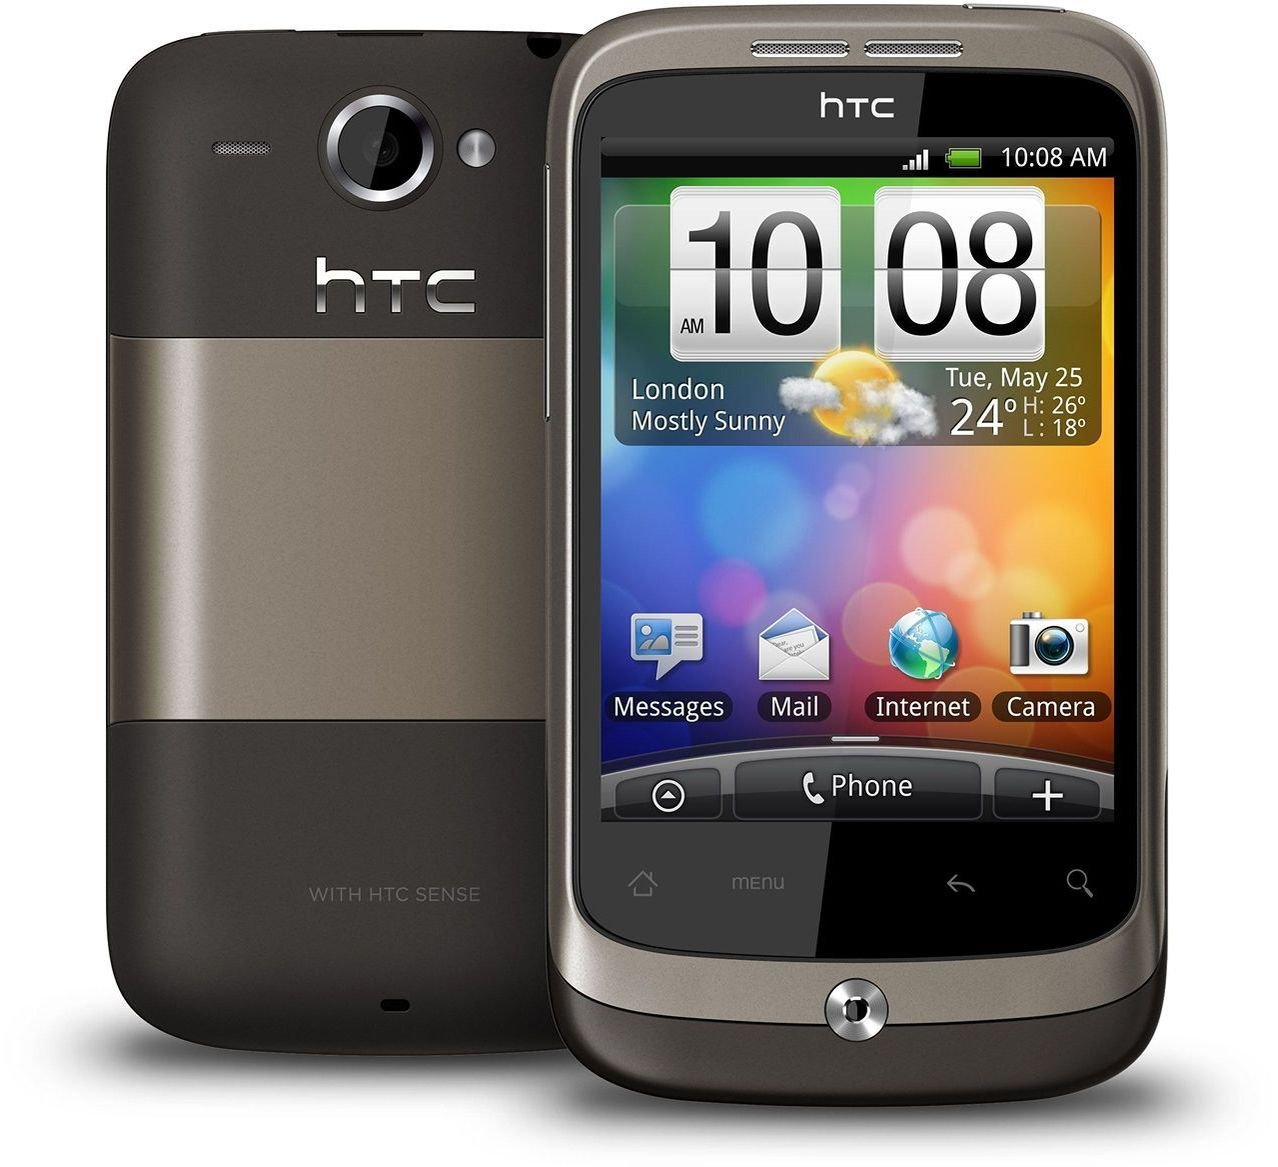 Update HTC Wildfire S to Android 4.1.2 AOKP Jelly Bean Custom ROM [How To]  - Tutorial / Guide